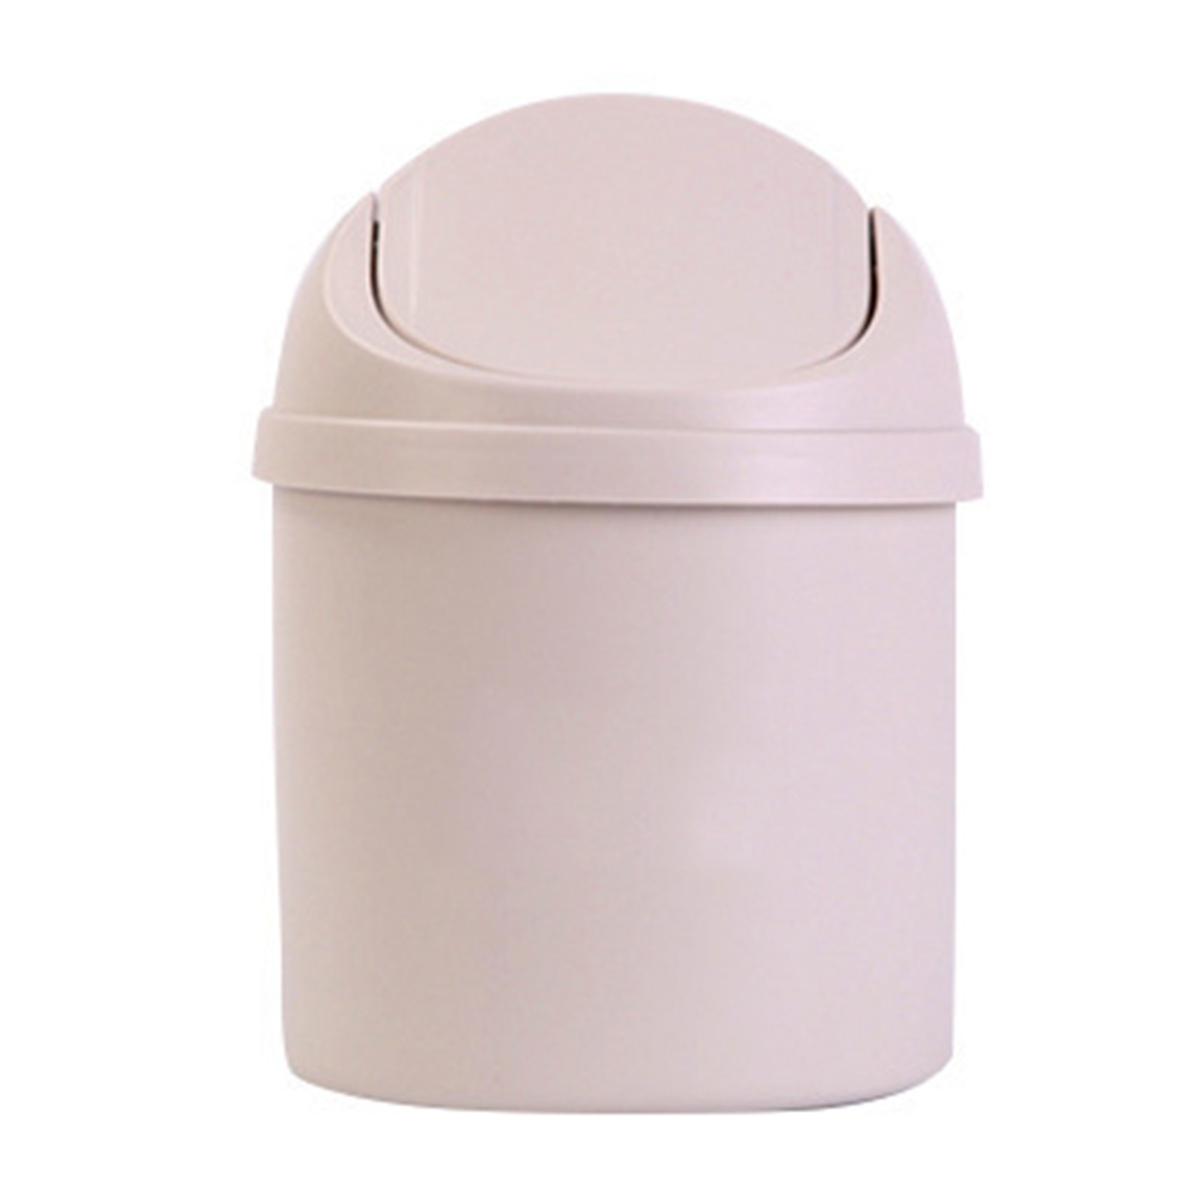 Mini Plastic Trash Can With Lid Mini Waste Bin Desktop Garbage Basket Home Table Trash Can Dustbin Container